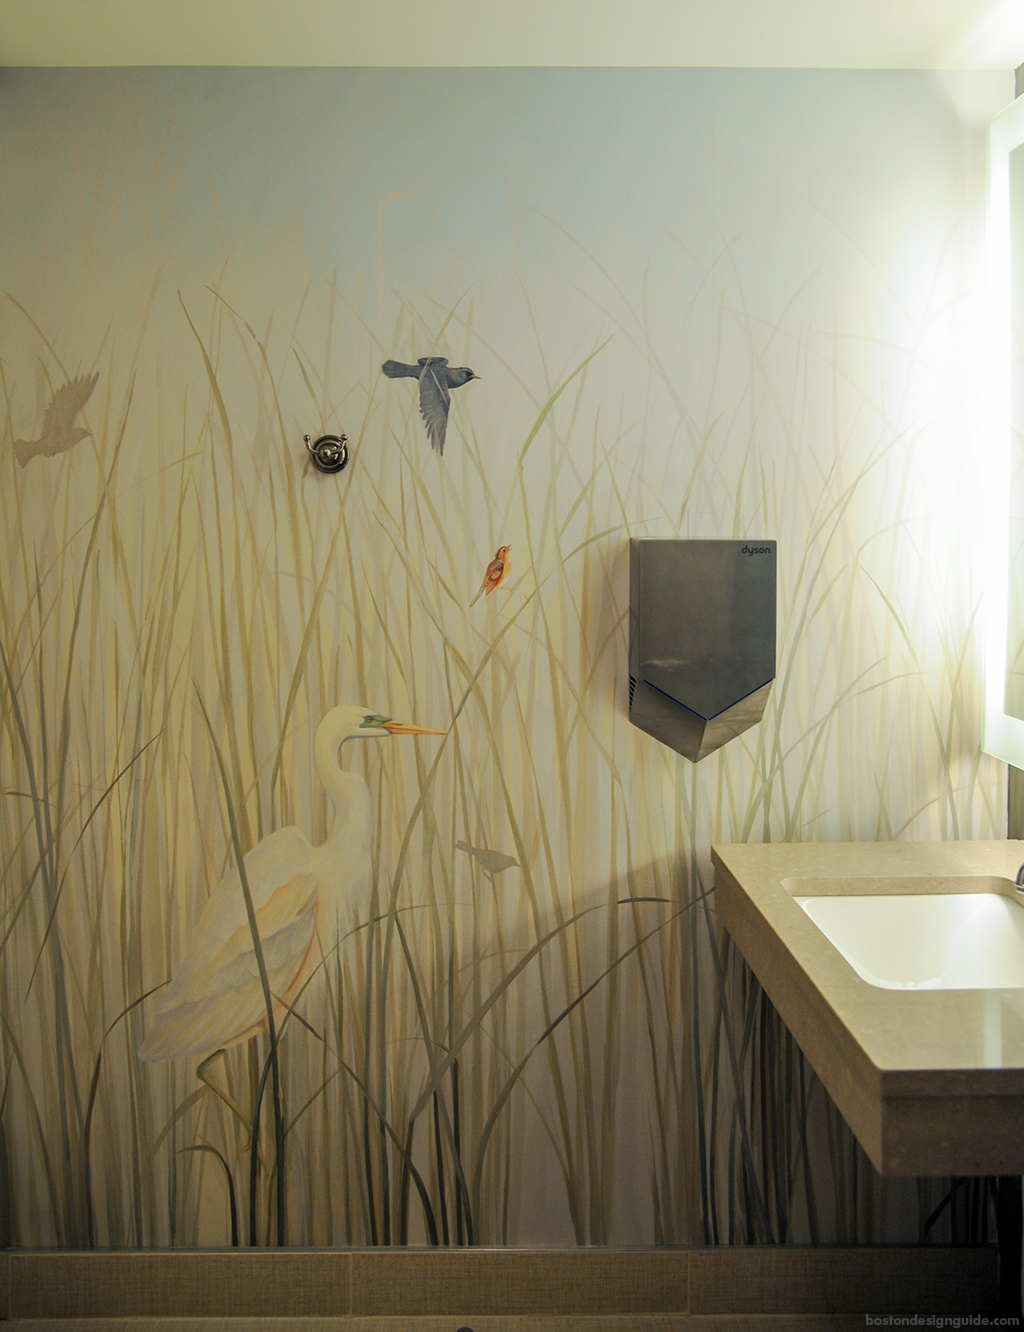 Nantucket Culinary Center, bathroom design, mural painting